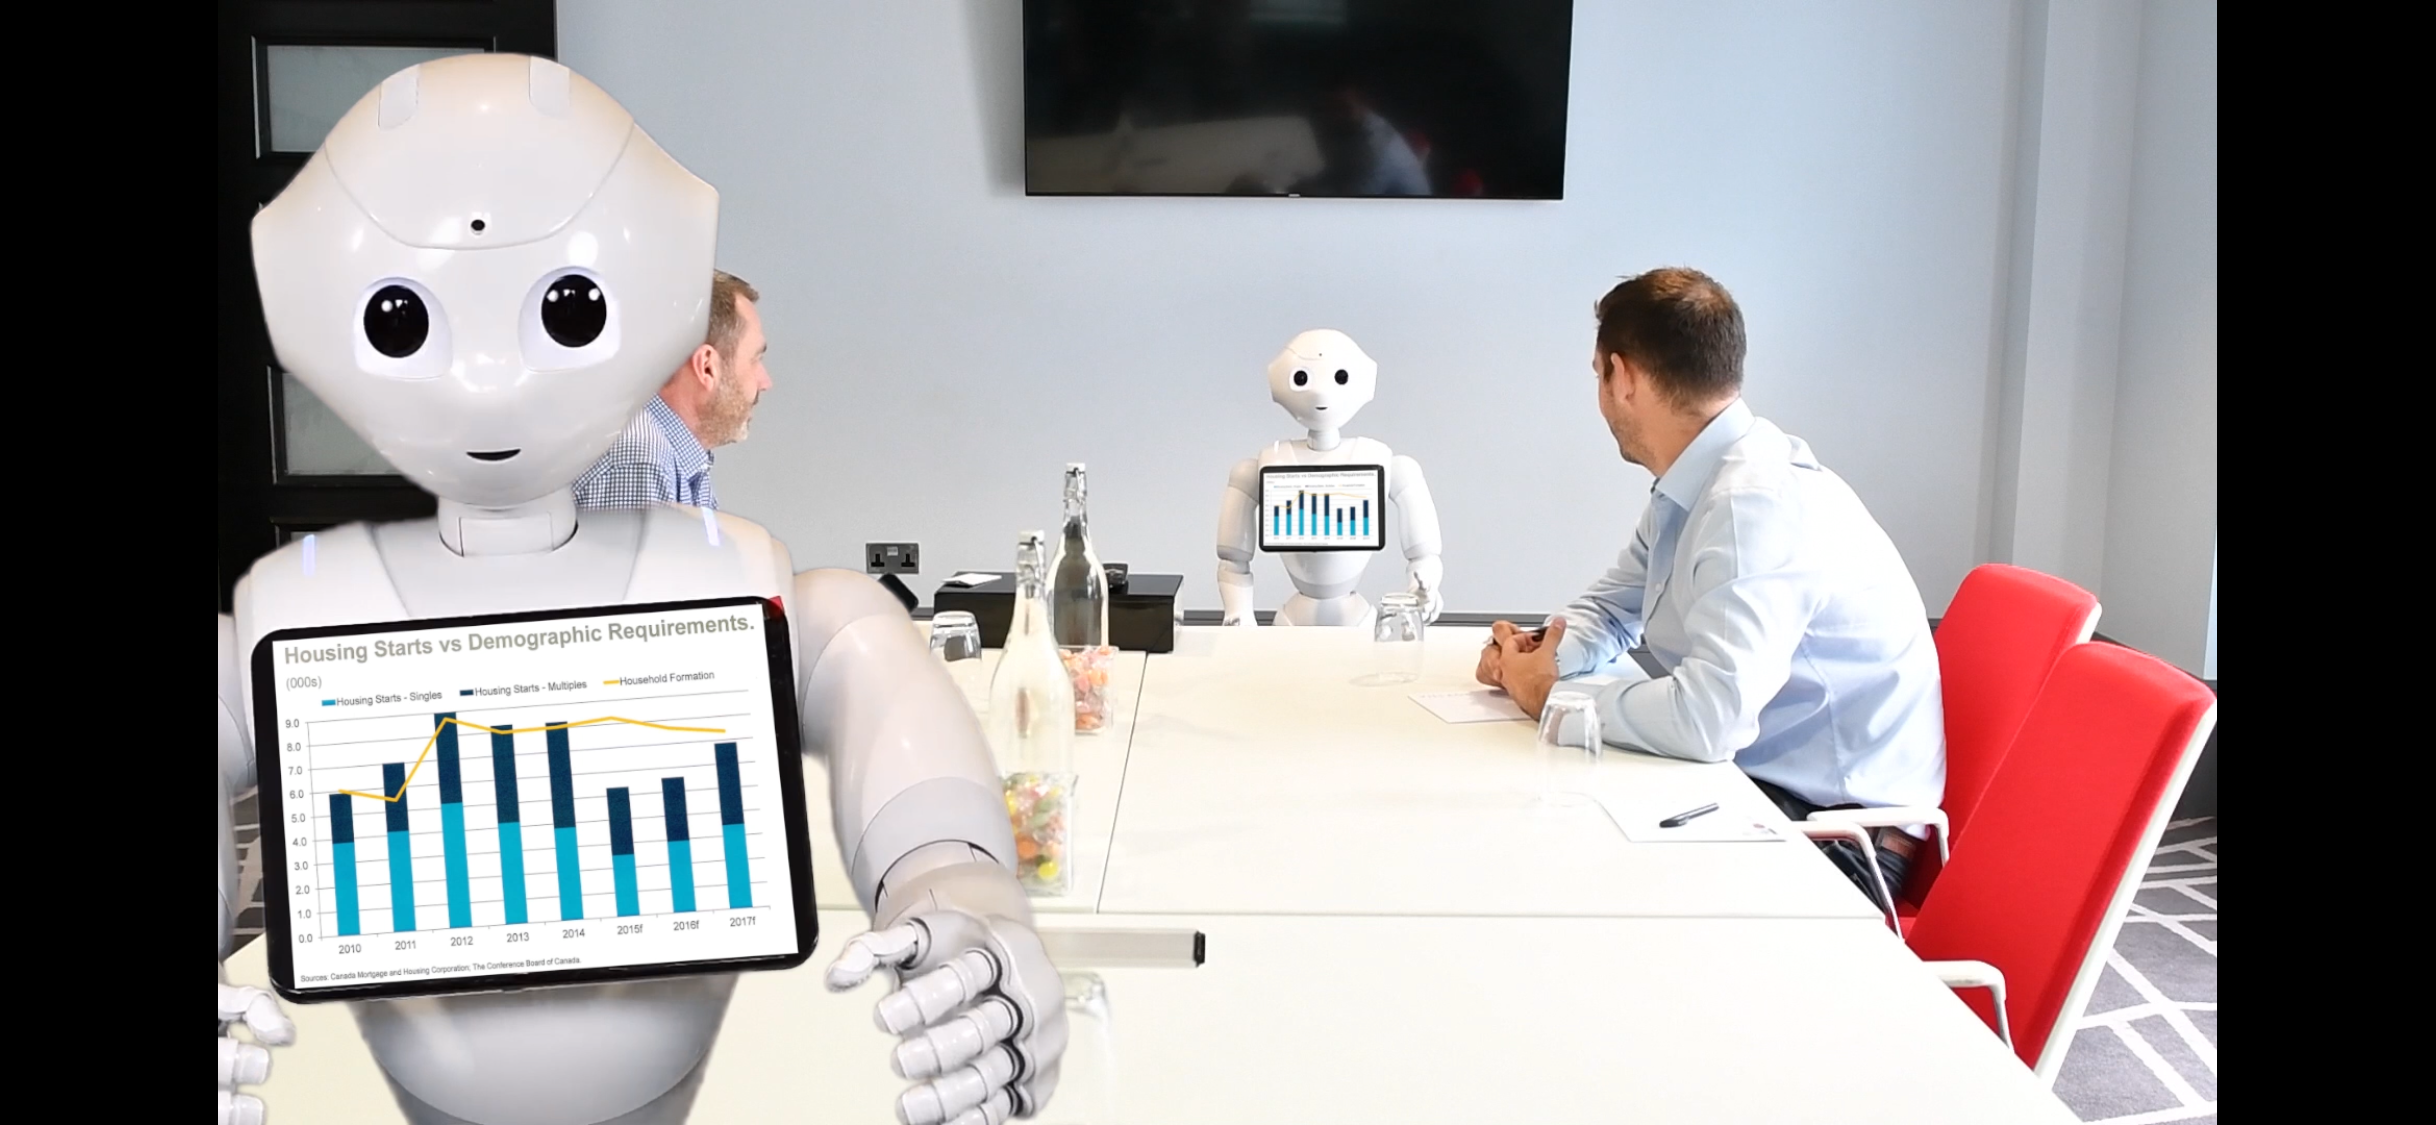 Pepper The Data Collector - Pepper is the ultimate data collector. Pepper will talk to your guests and as...................read more